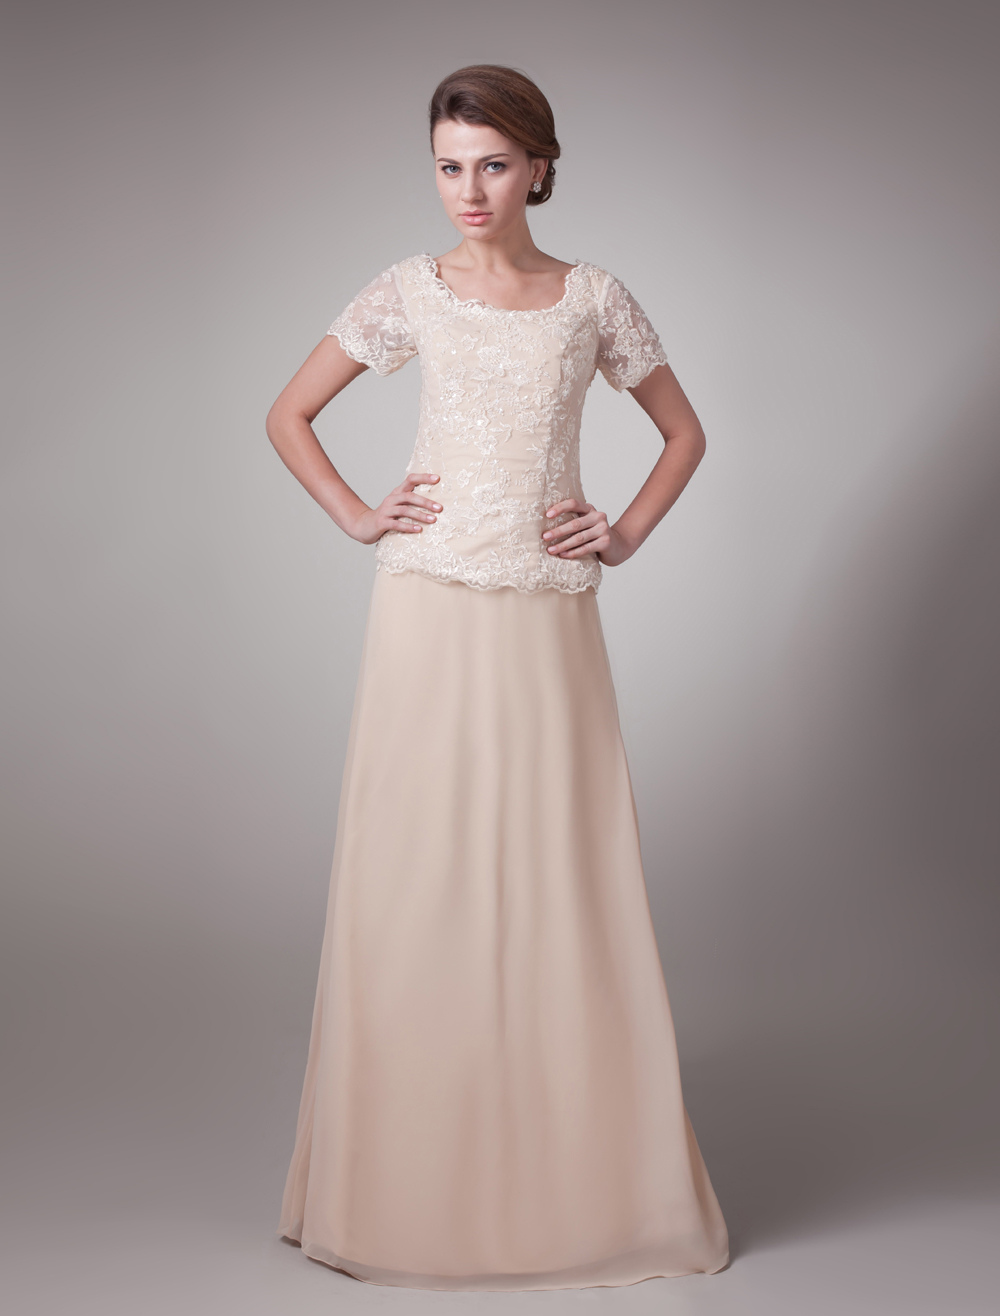 Pink Formal Short Sleeves Lace Satin Mother Of Bride And Groom Dress